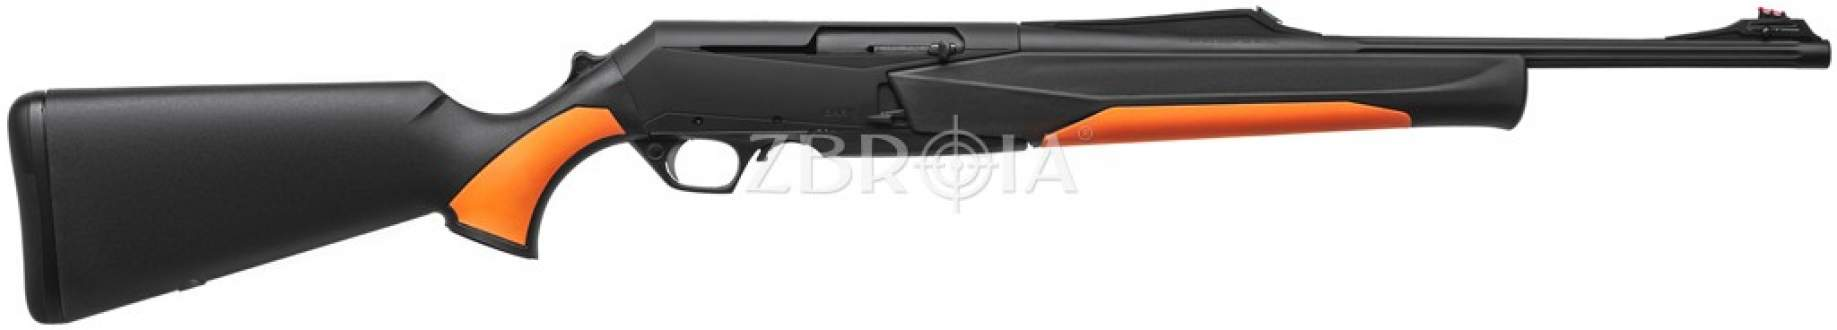 Карабин Browning BAR MK3 Composite HC Tracker кал. 308 Win